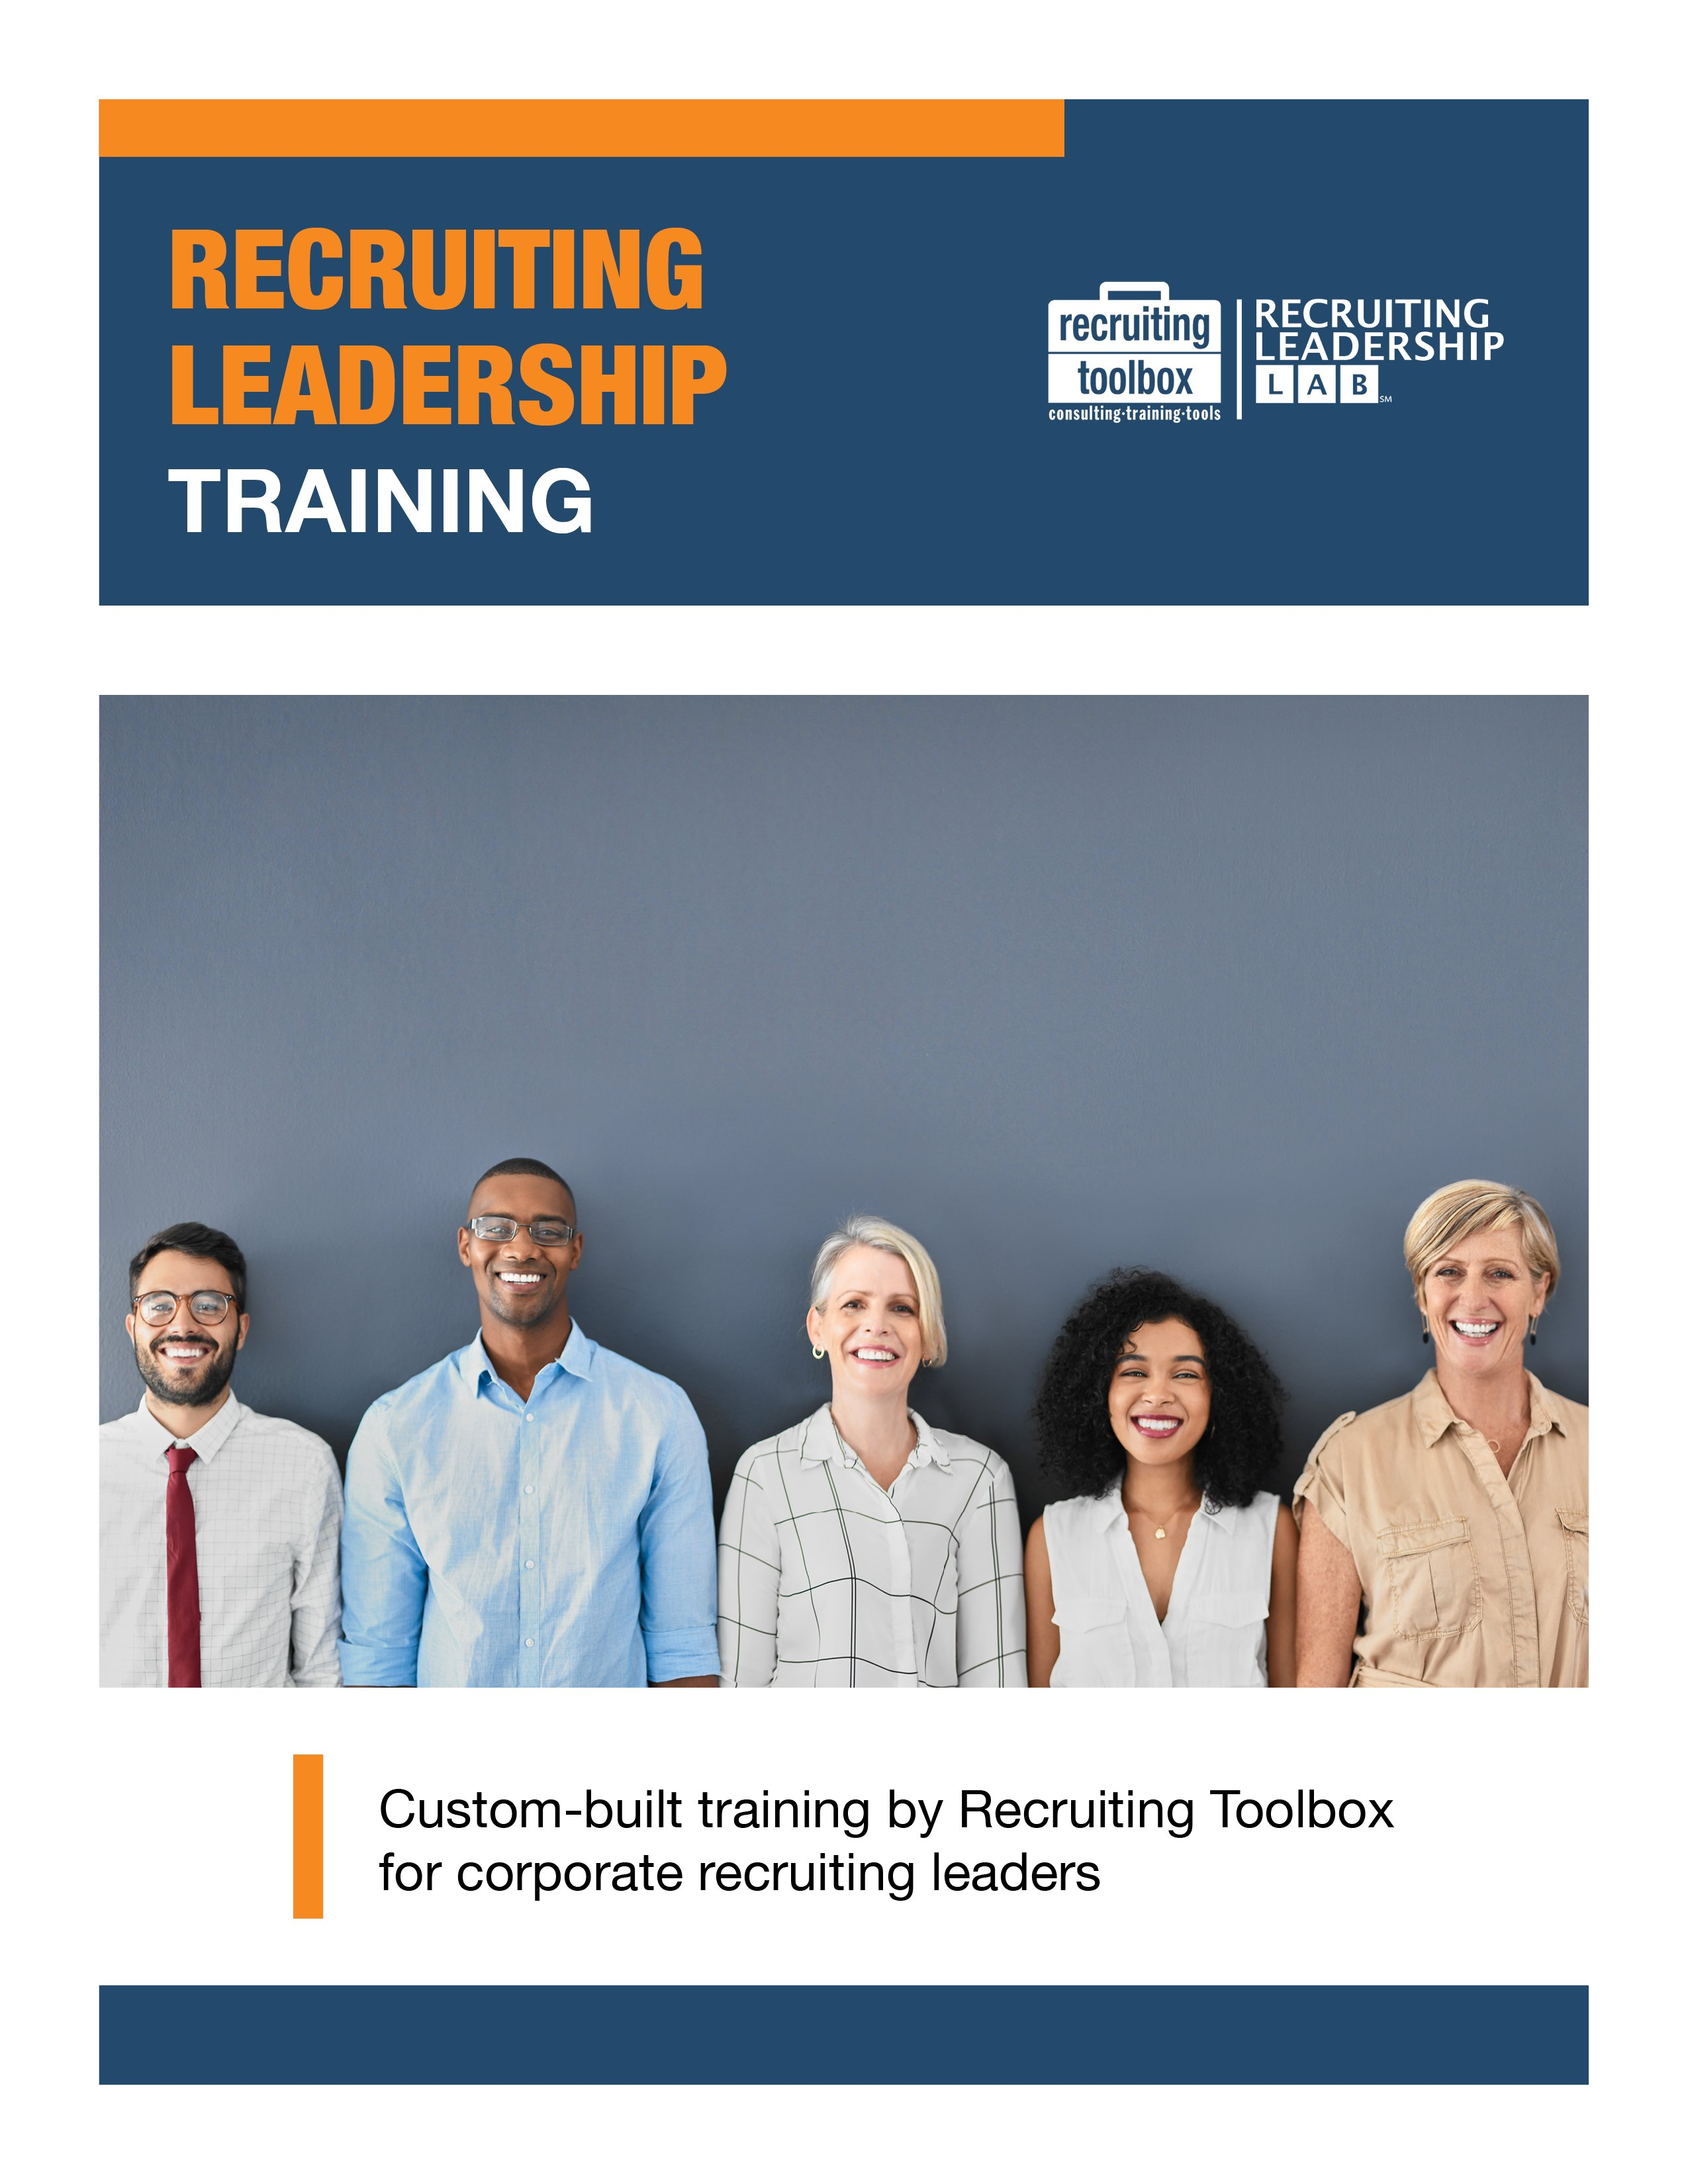 Recruiting Leadership Training Overview